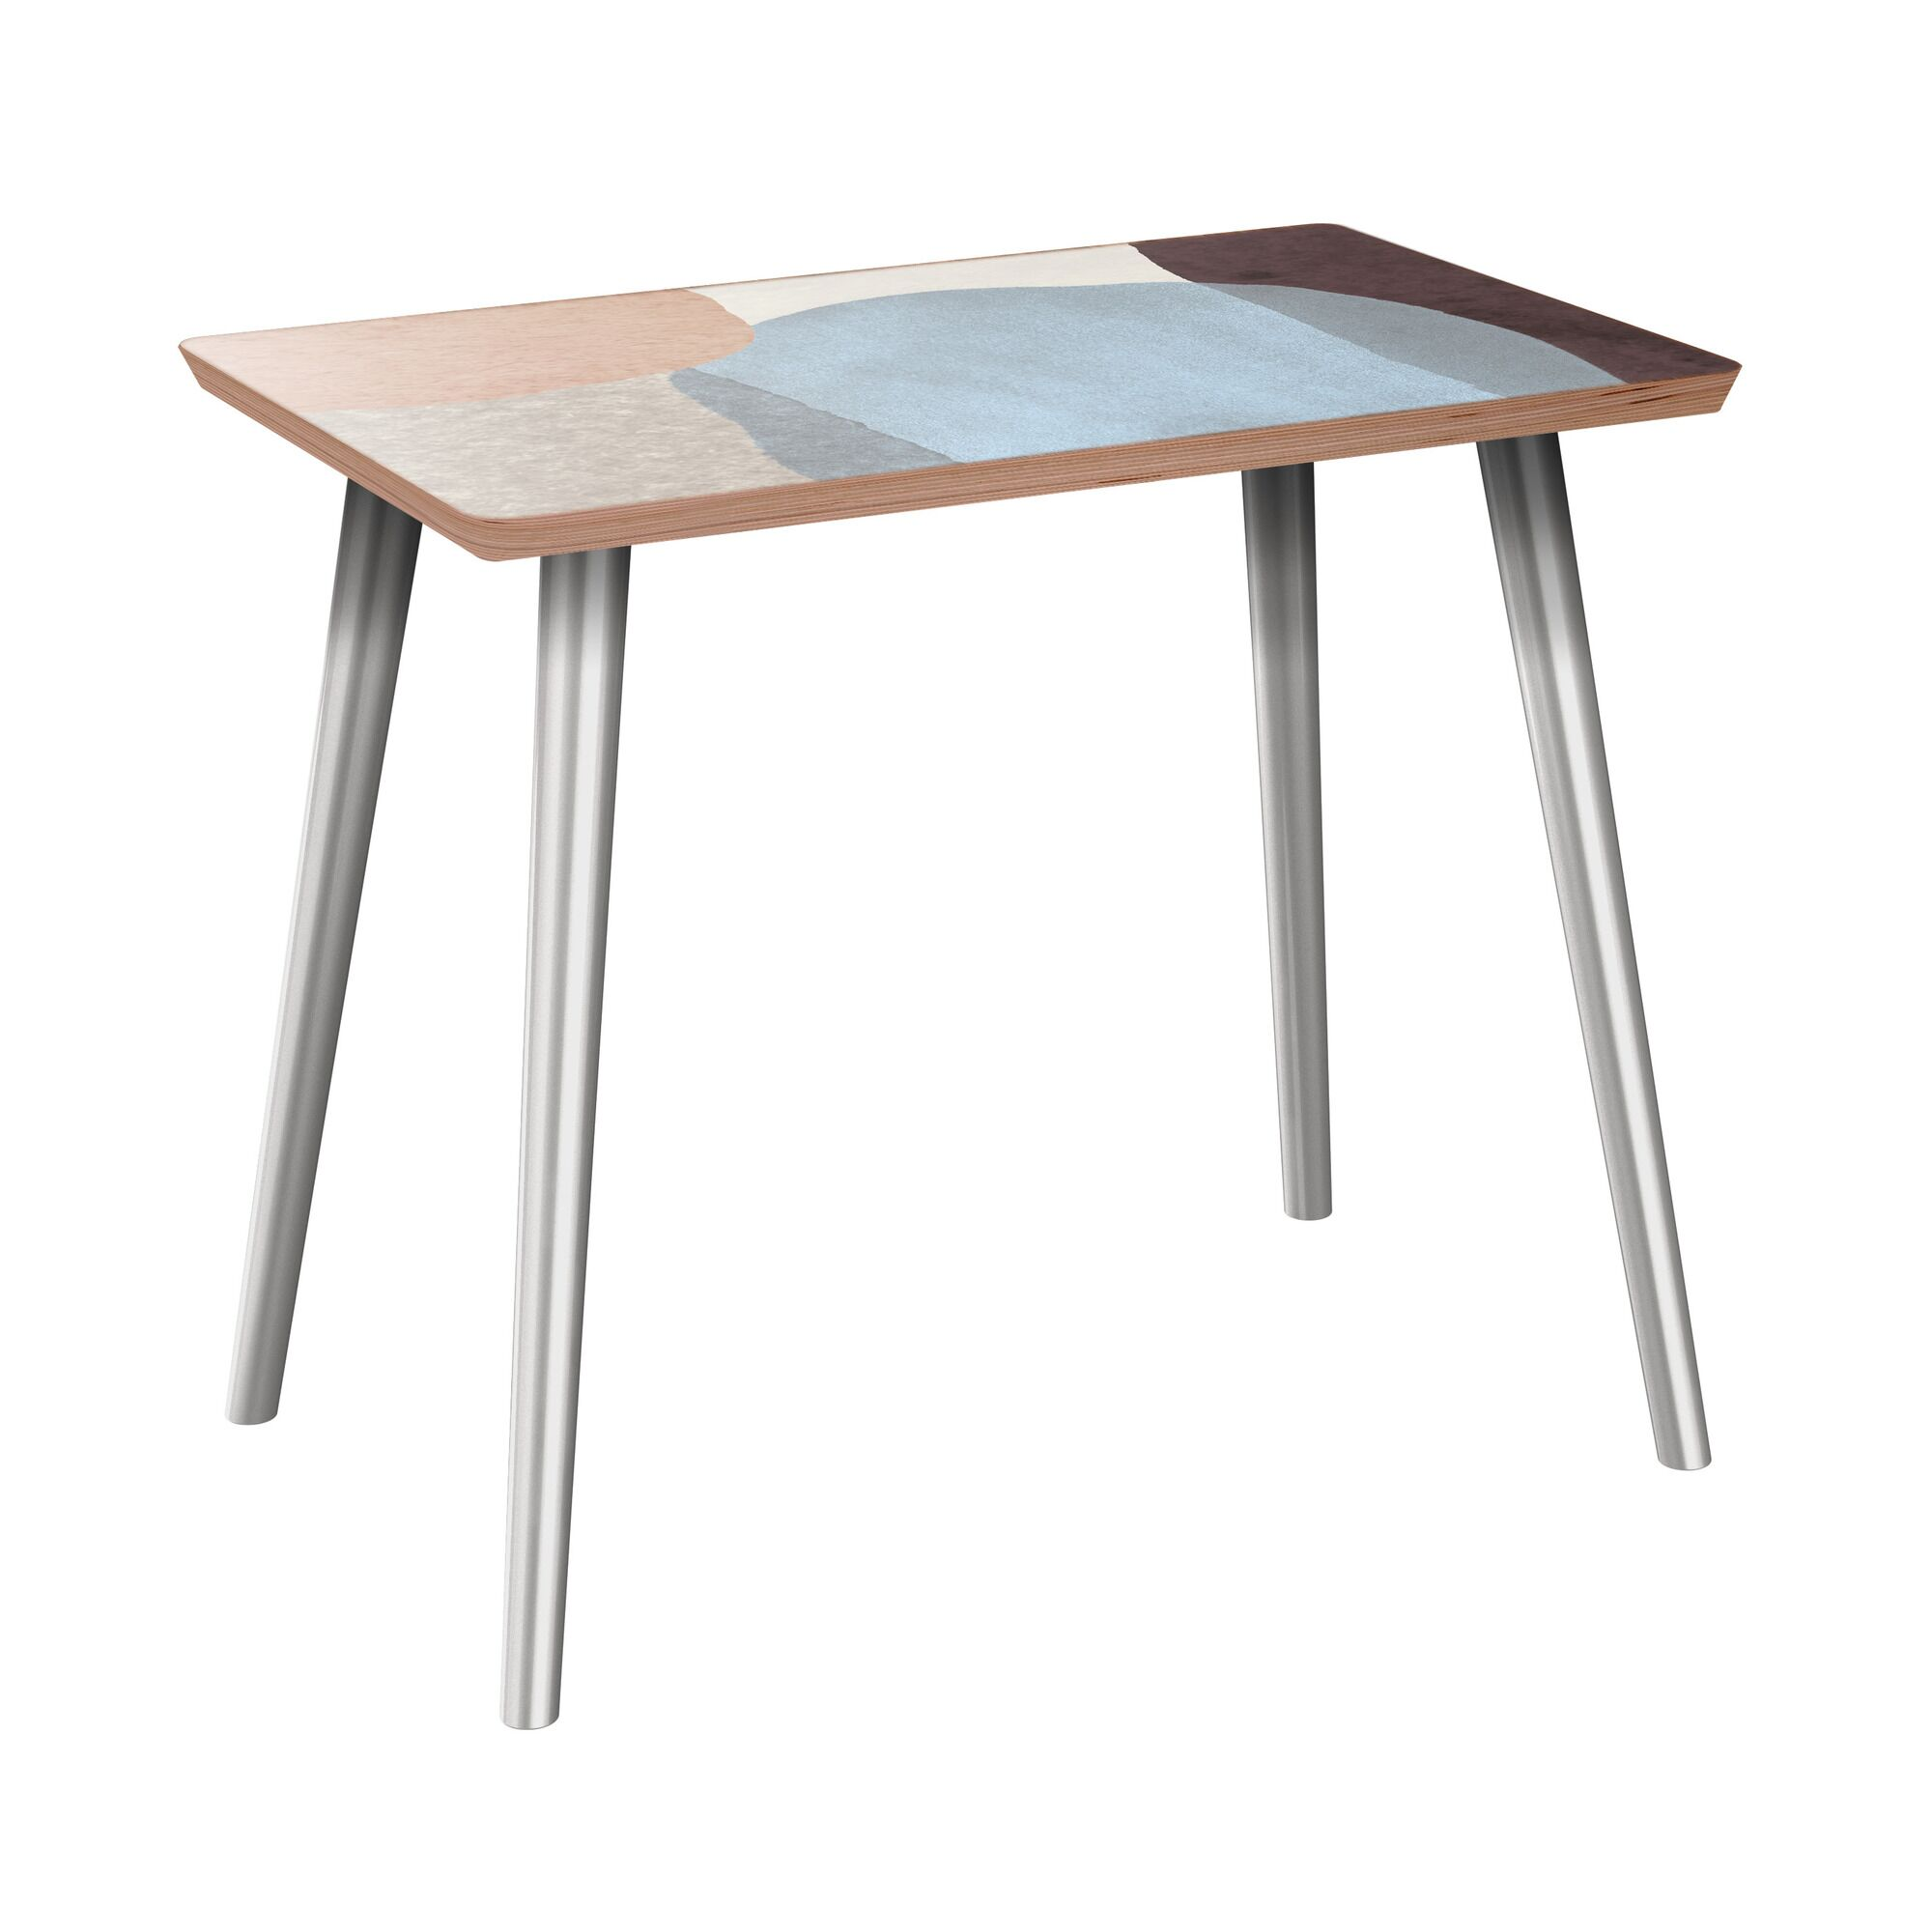 Faircloth End Table Table Base Color: Chrome, Table Top Color: Walnut